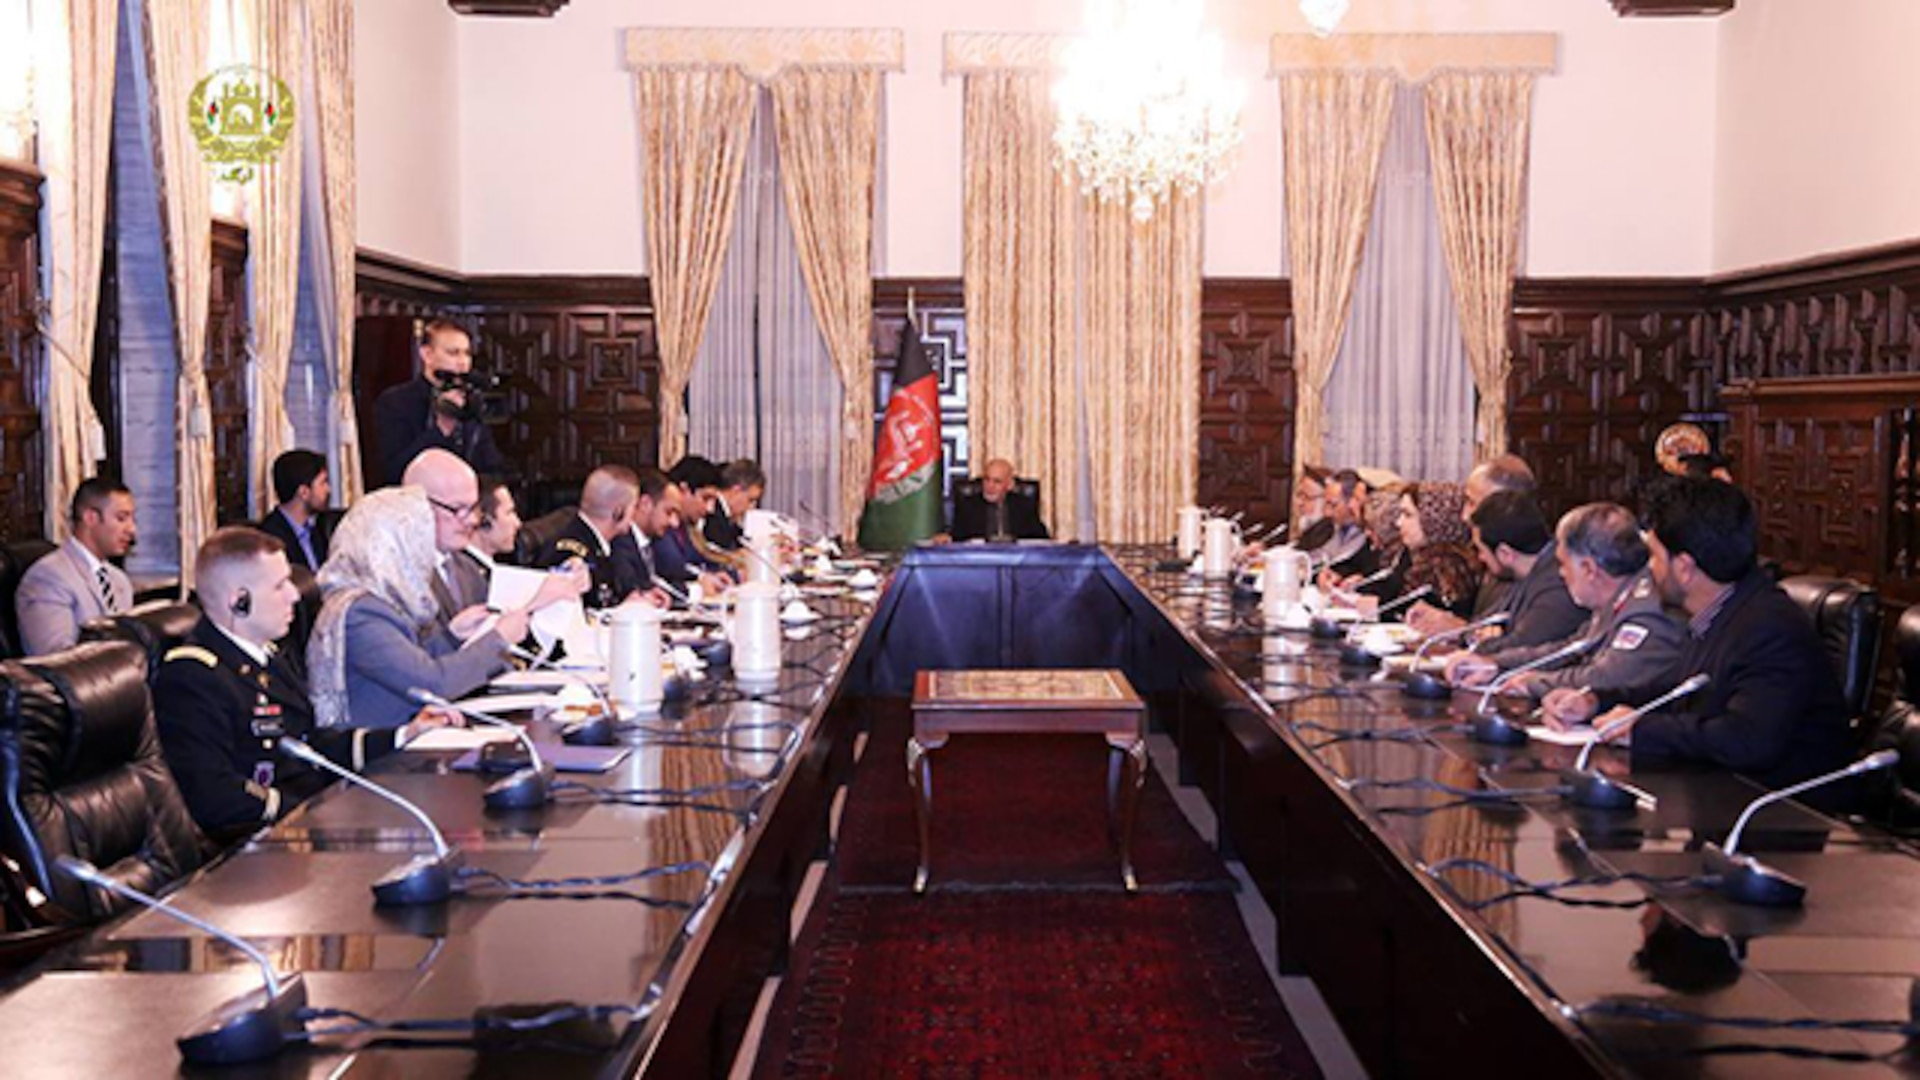 John Griffiths, a Defense Contract Management Agency administrative contracting officer, attends a meeting held by the president of Afghanistan, Ashraf Ghani in Kabul, Afghanistan. Griffiths recently deployed in support of the agency's Contingency Response Force. (Photo courtesy of National Procurement Authority Public Affairs Office)